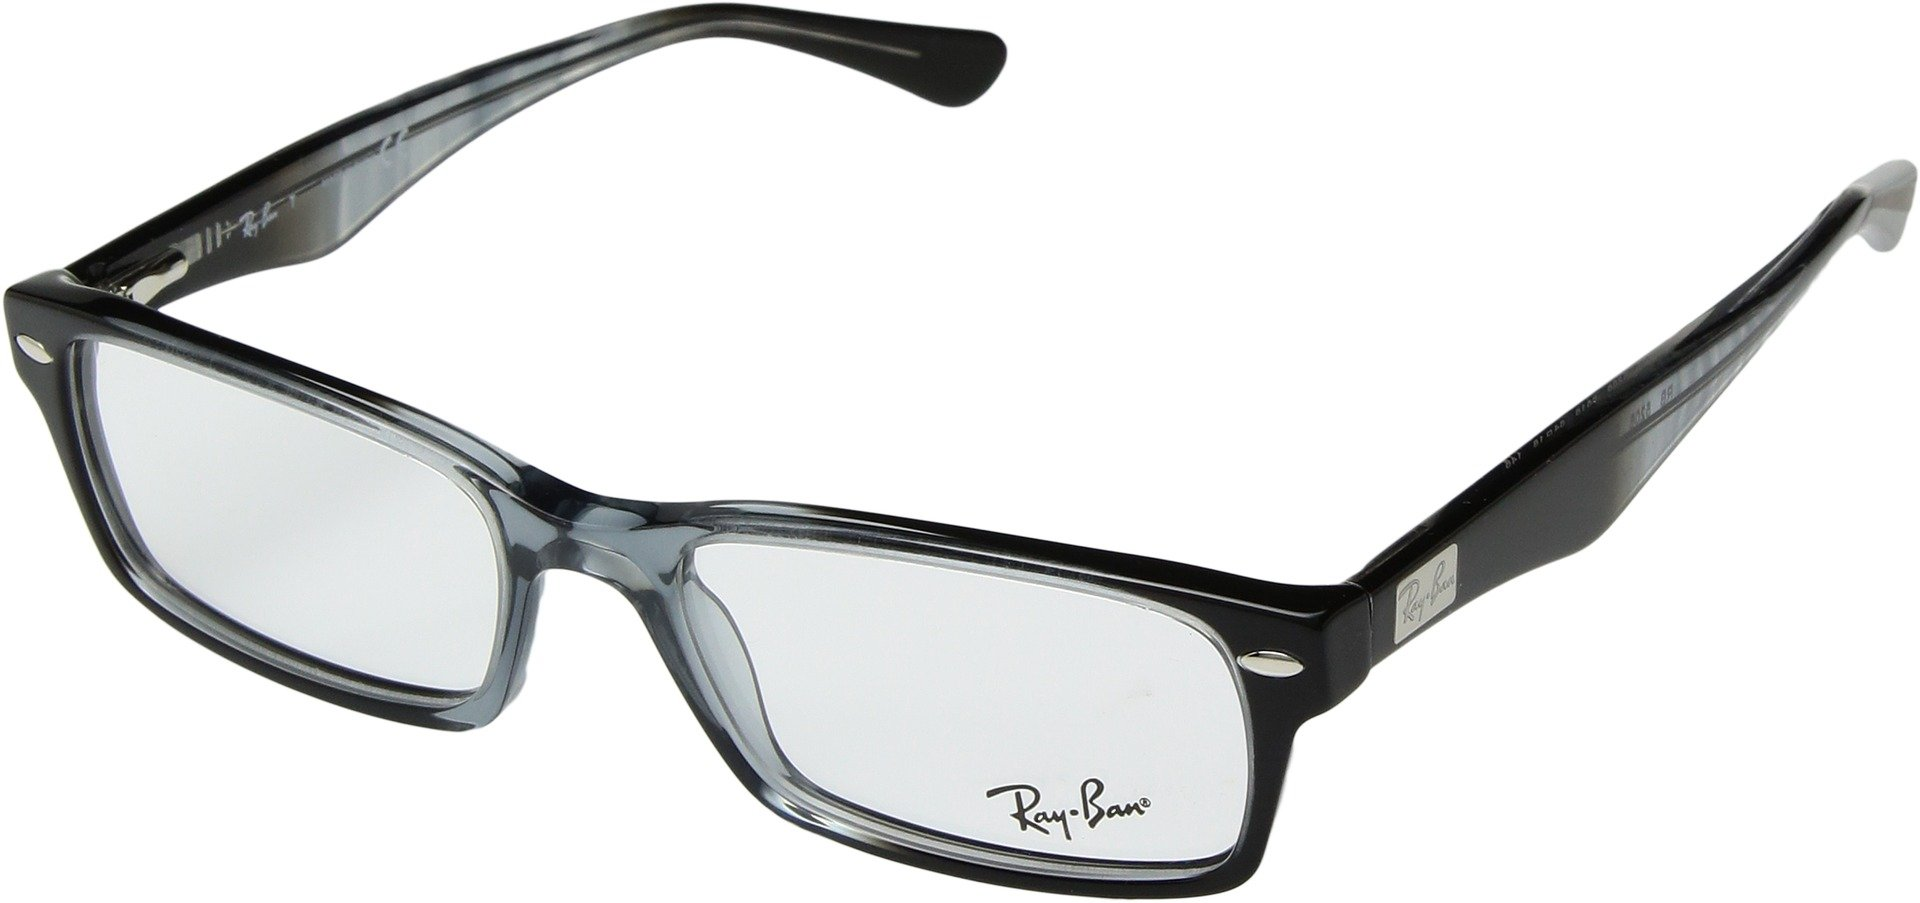 Ray-Ban Unisex 0RX5206 54mm Gradient Grey/Black One Size